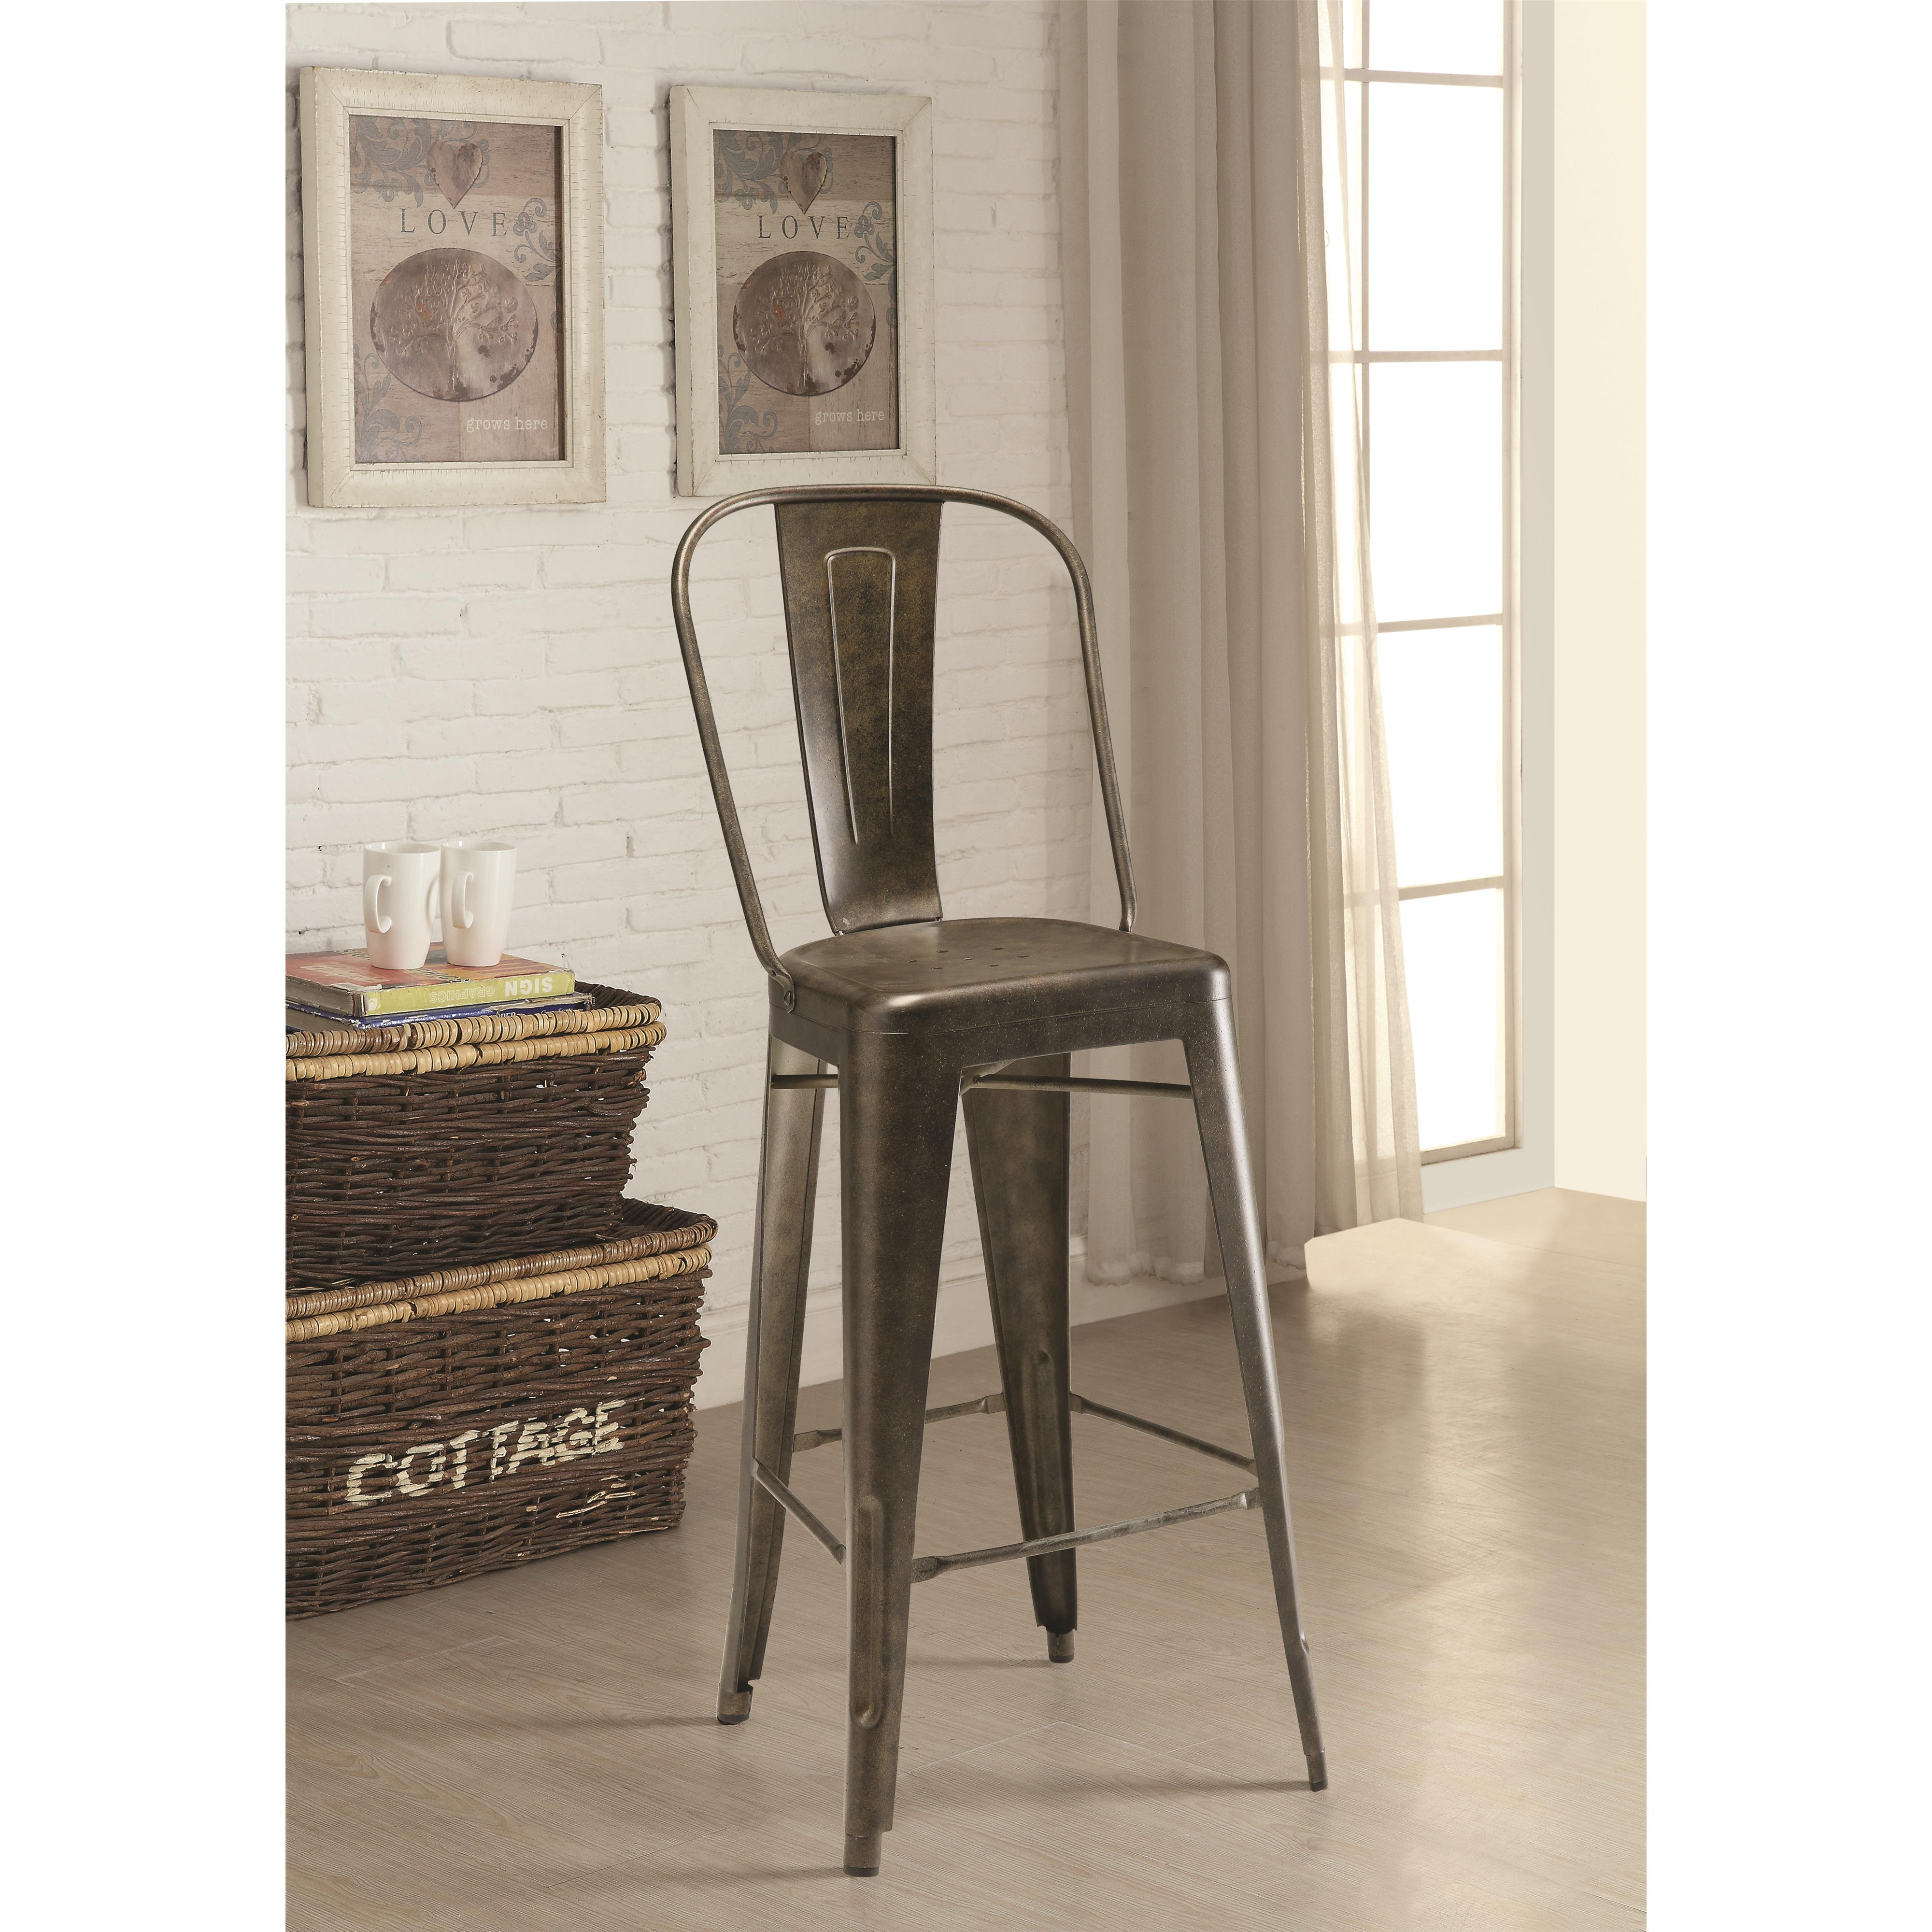 Coaster Dining Chairs and Bar Stools Bar Stool - Item Number: 106016